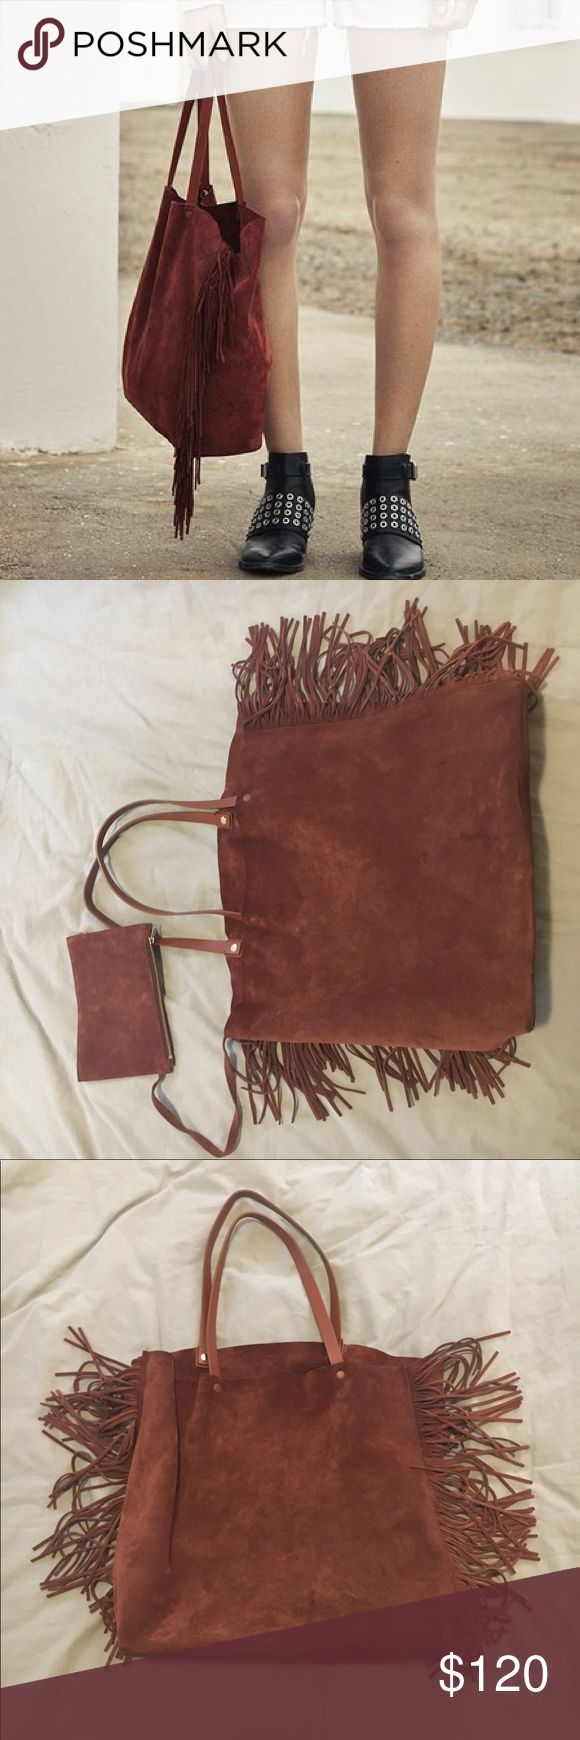 AllSaints suede tote Allsaints suede brick red color shopper. Has attached key compartment. Worn it several times. All Saints Bags Totes